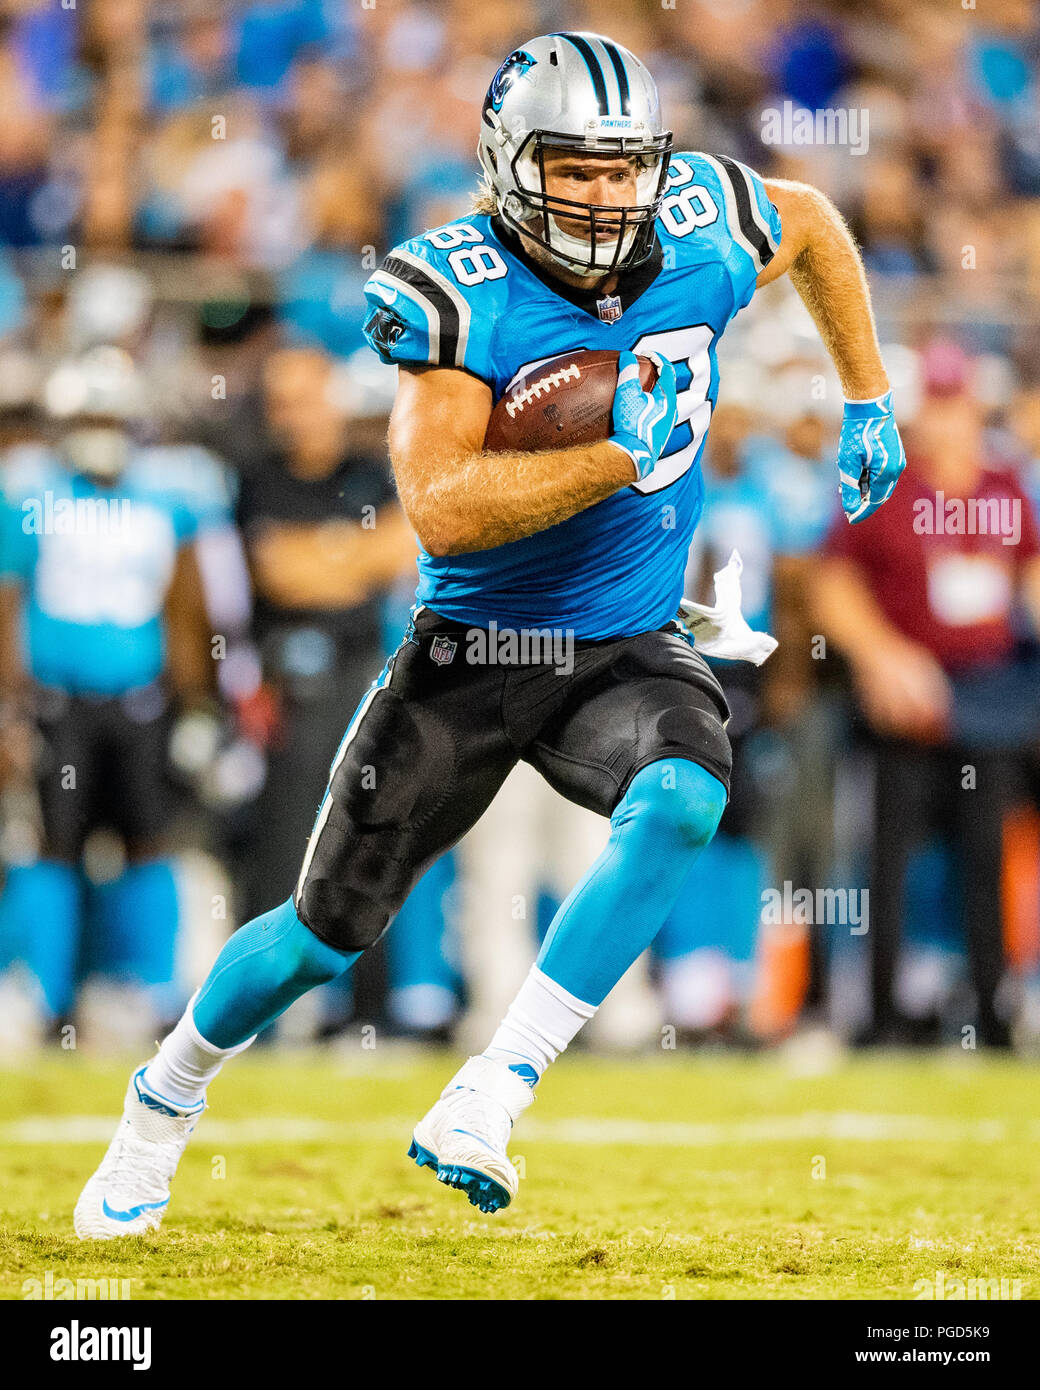 7604554e0 Carolina Panthers tight end Greg Olsen (88) during the preseason NFL  football game between the New England Patriots and the Carolina Panthers on  Friday ...